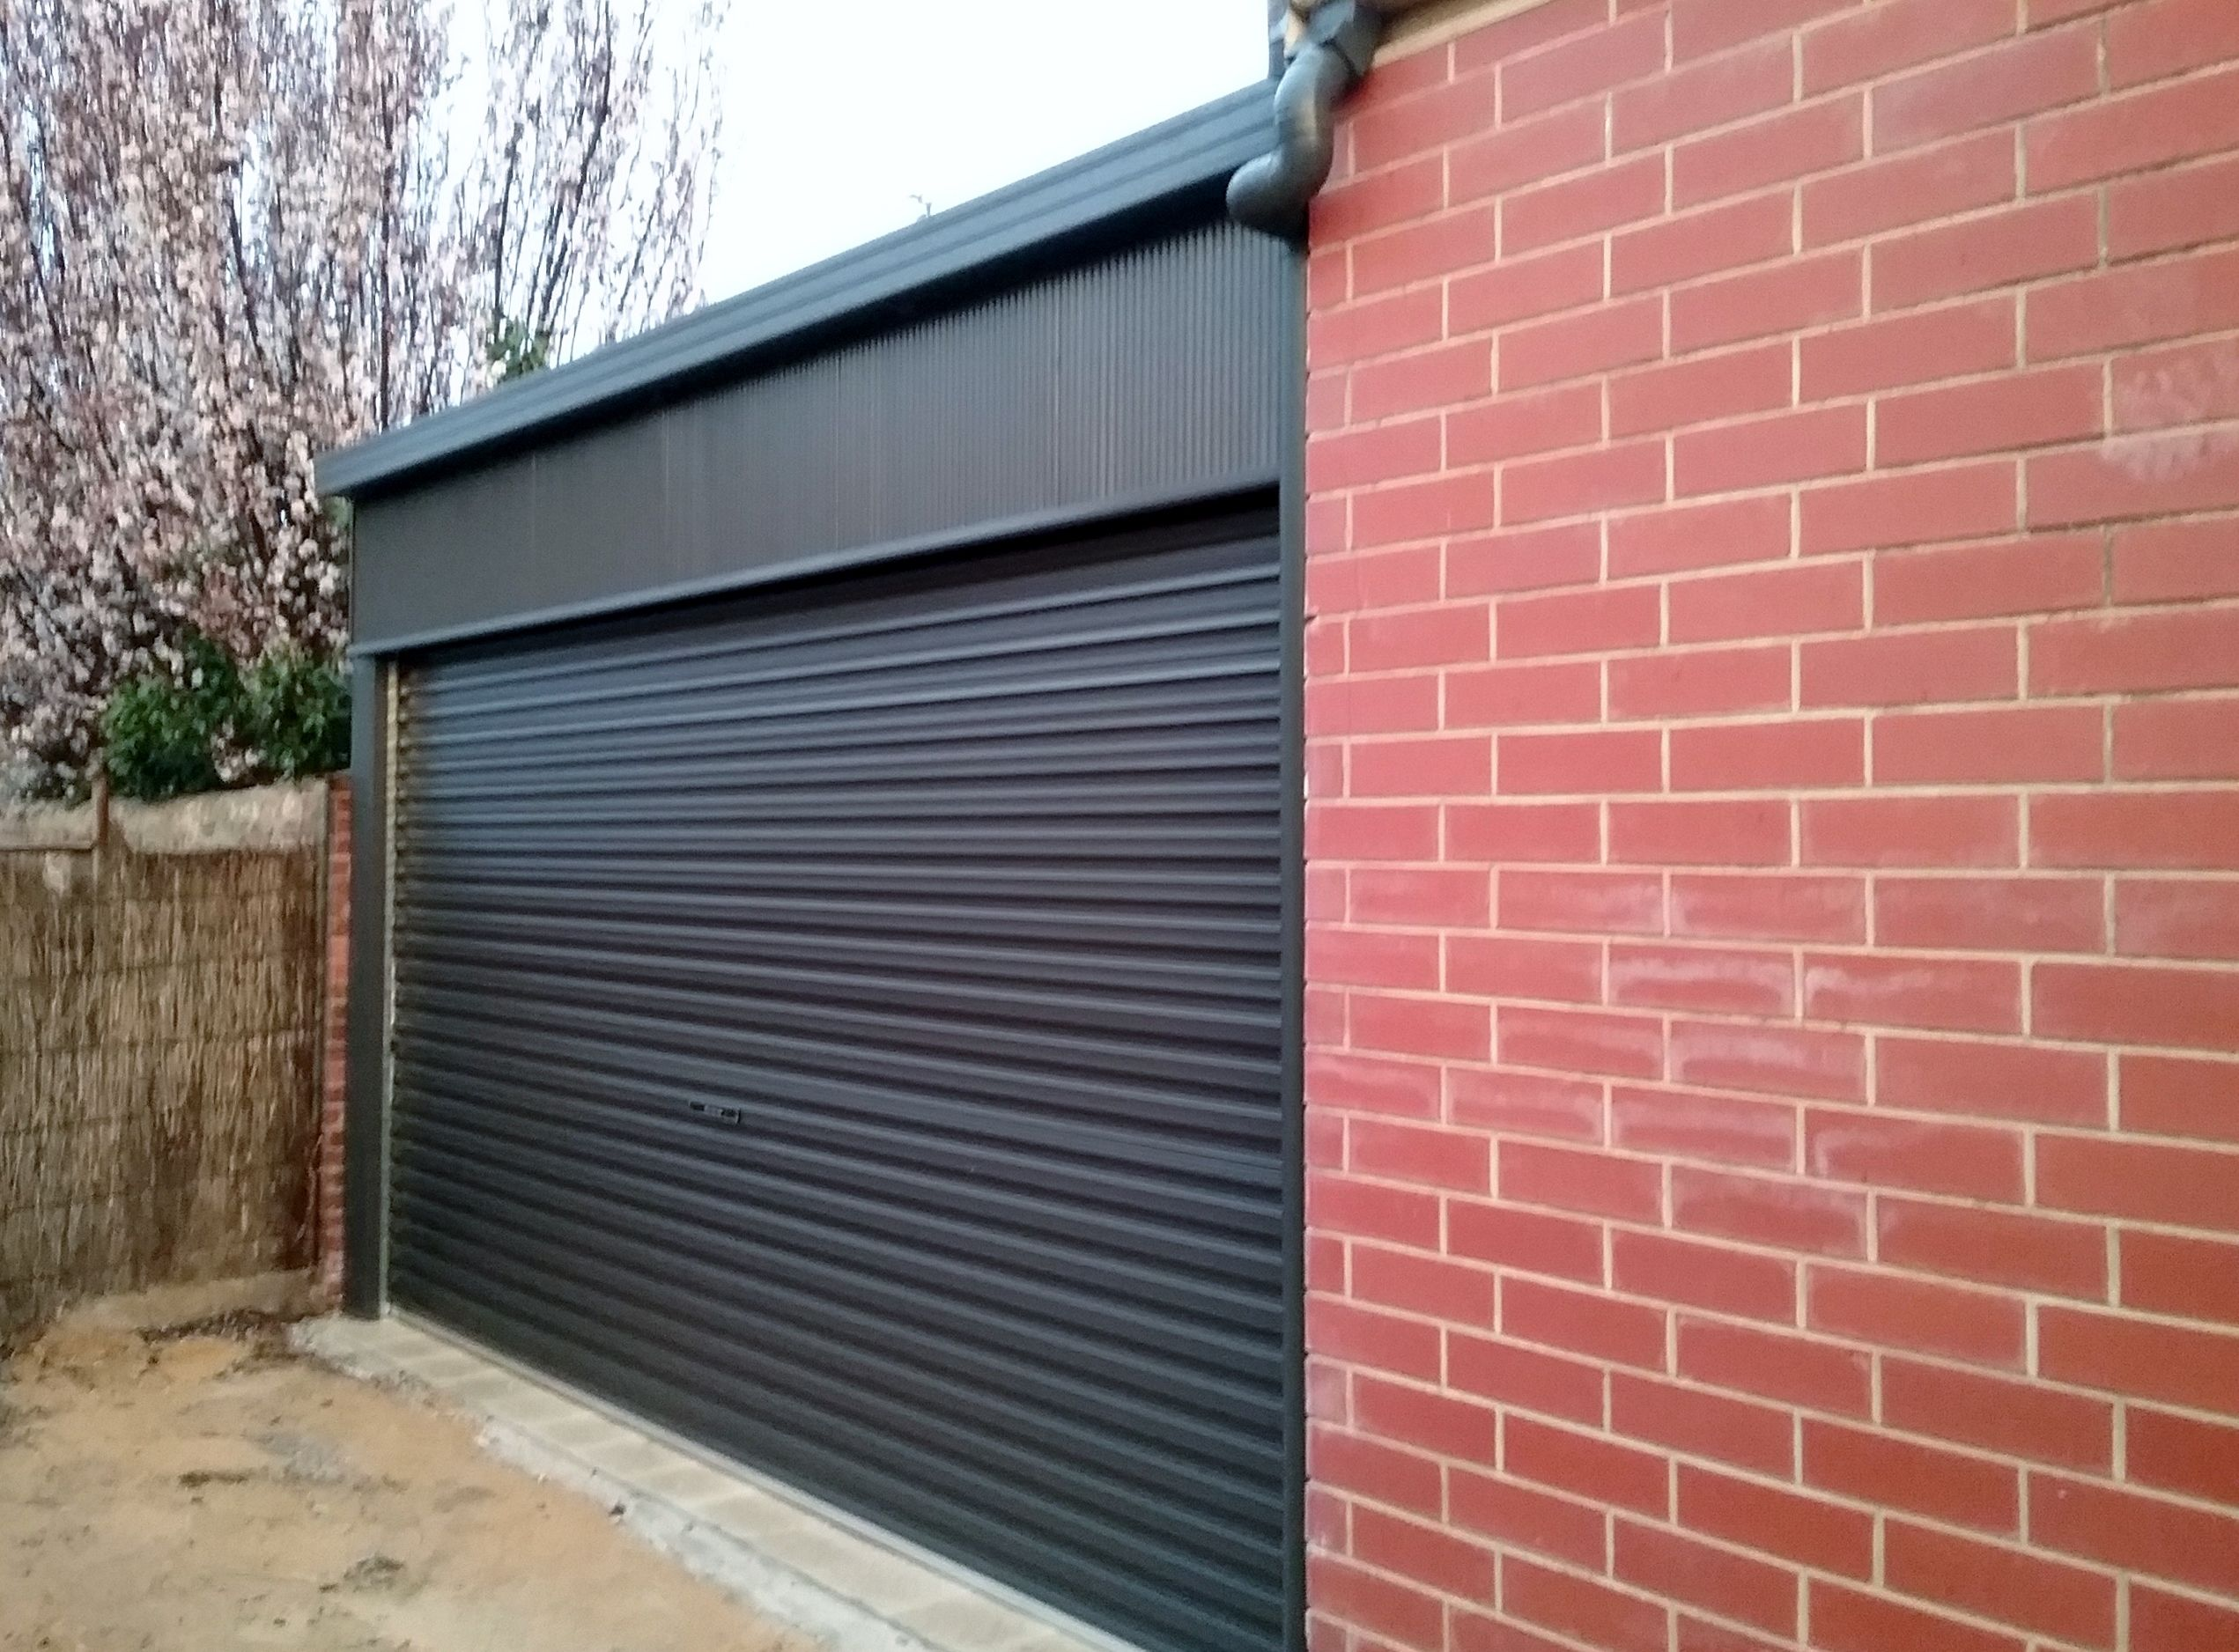 Double wide carports with roller door dmv outdoor solutions www double wide carports with roller door dmv outdoor solutions dmvoutdoorsolution rubansaba